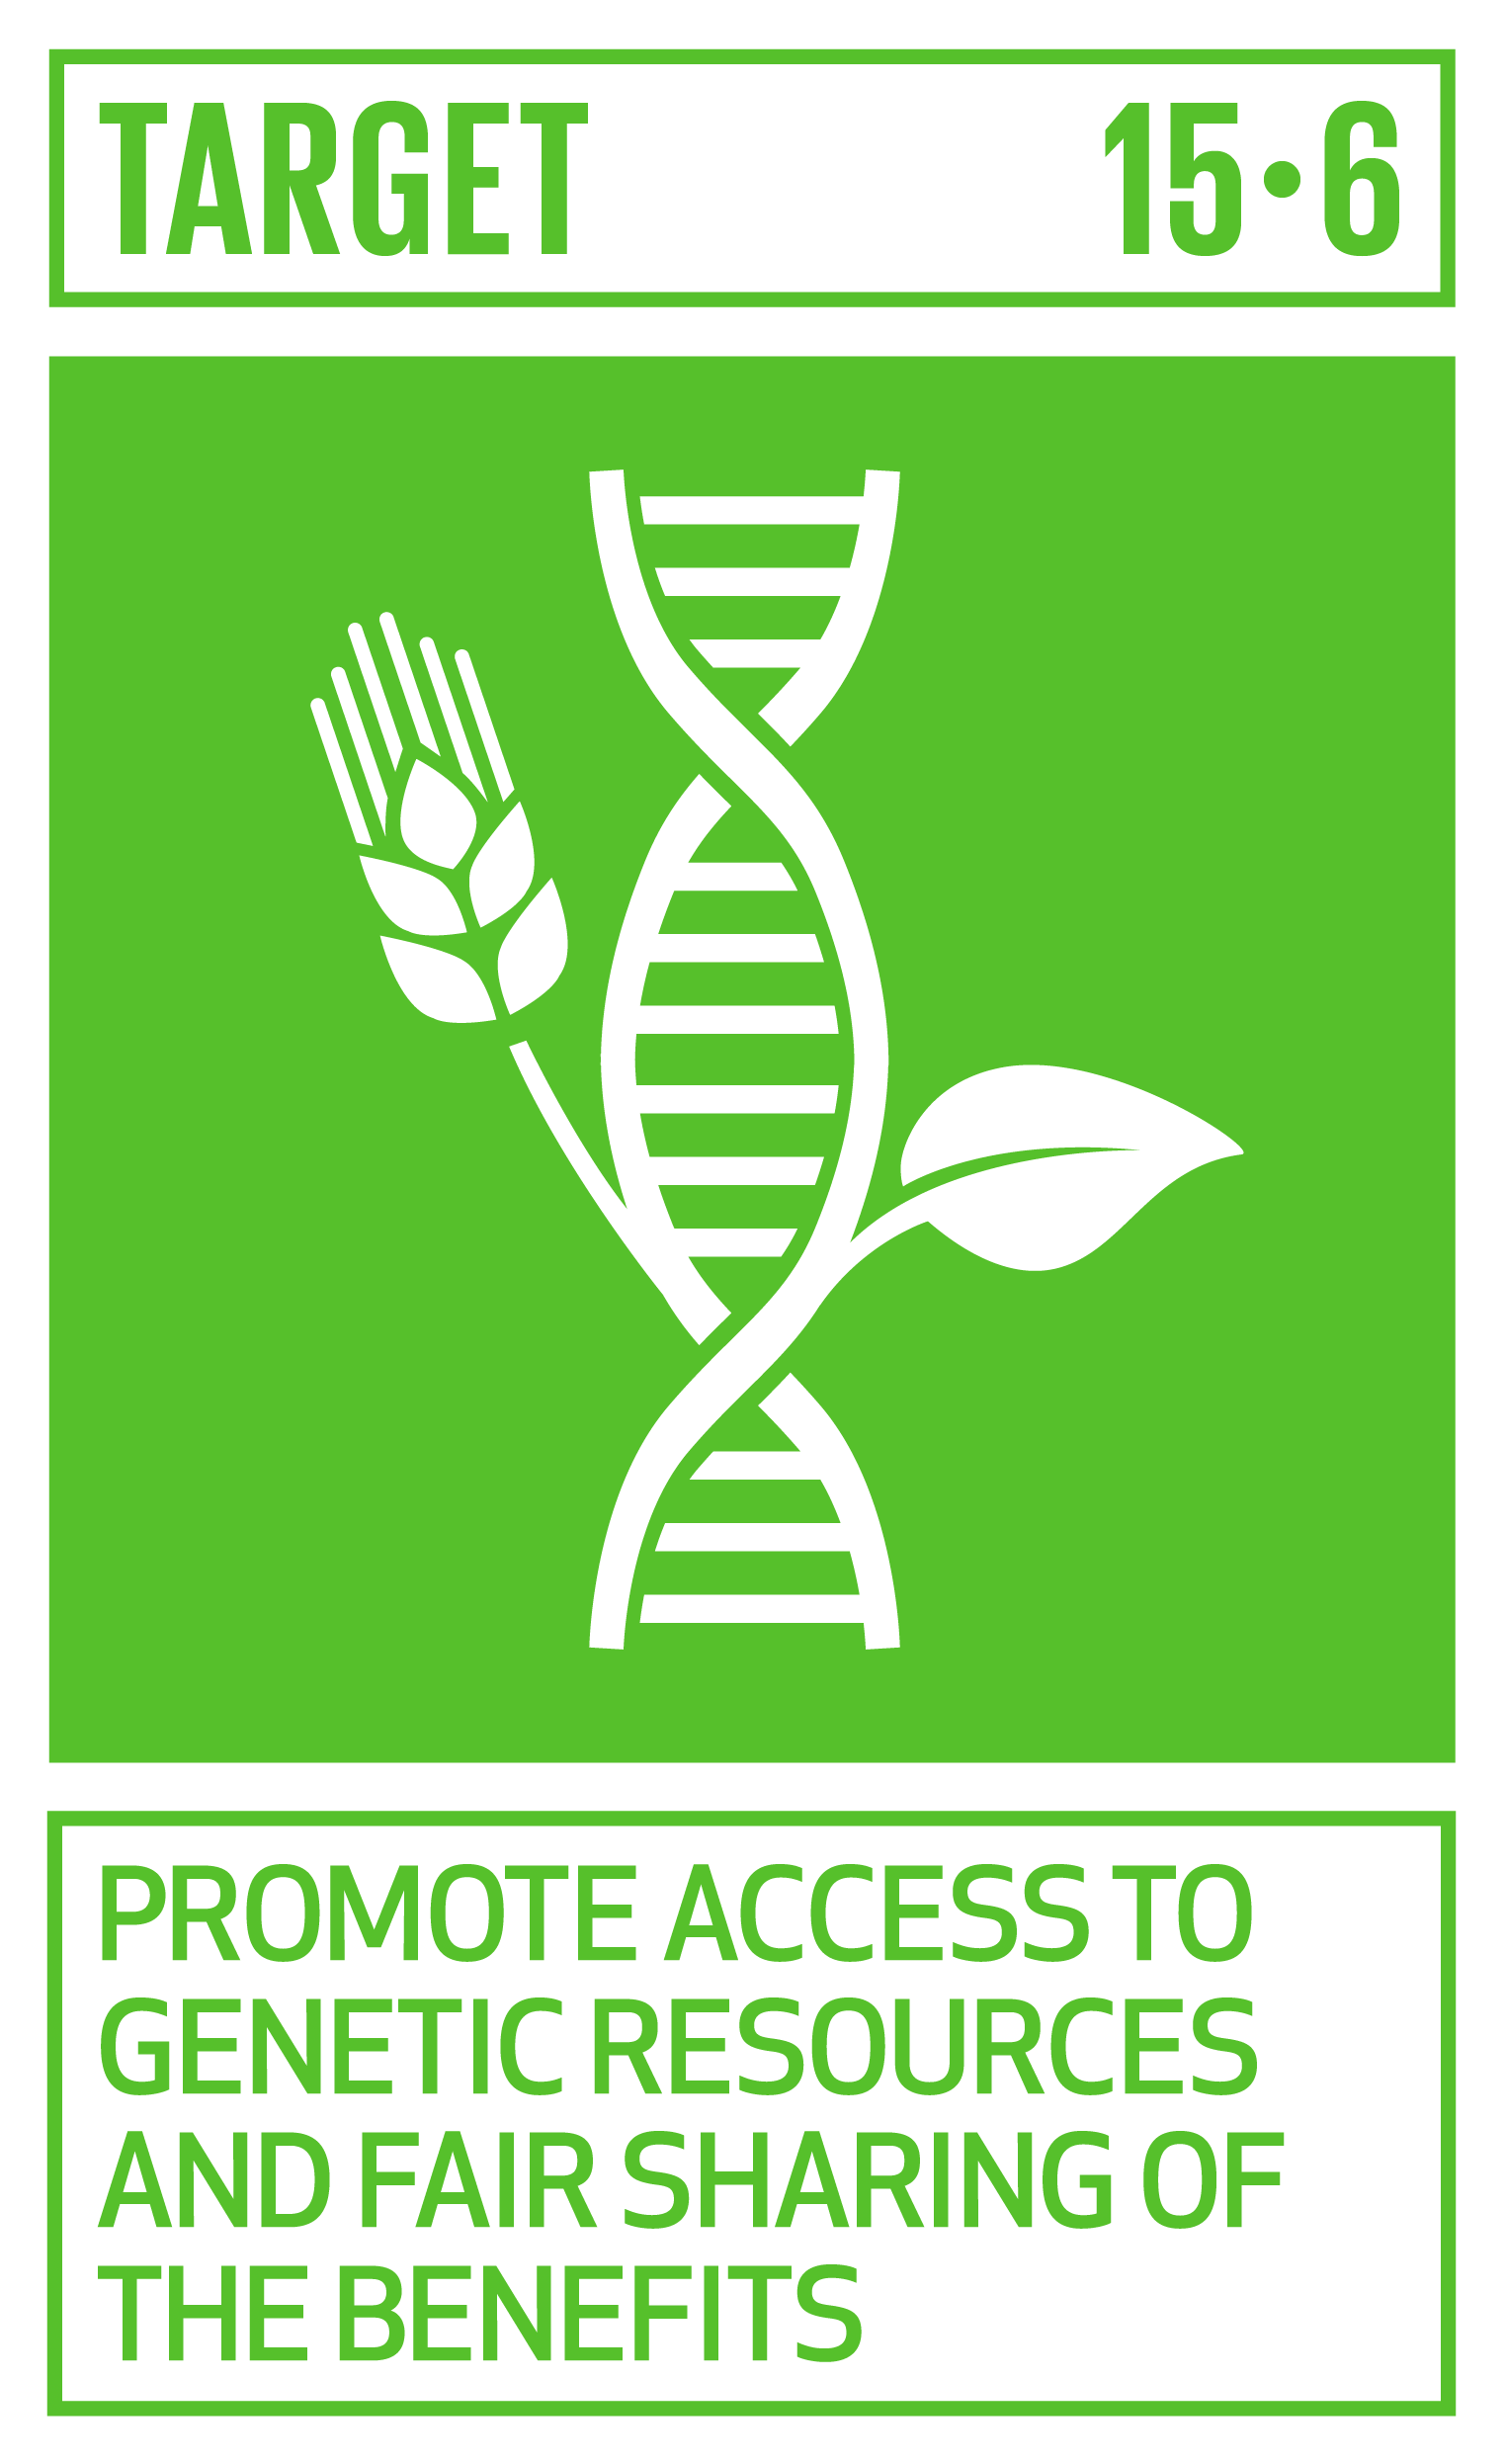 Promote fair and equitable sharing of the benefits arising from the utilization of genetic resources and promote appropriate access to such resources, as internationally agreed.   INDICATOR    15.6.1  Number of countries that have adopted legislative, administrative and policy frameworks to ensure fair and equitable sharing of benefits